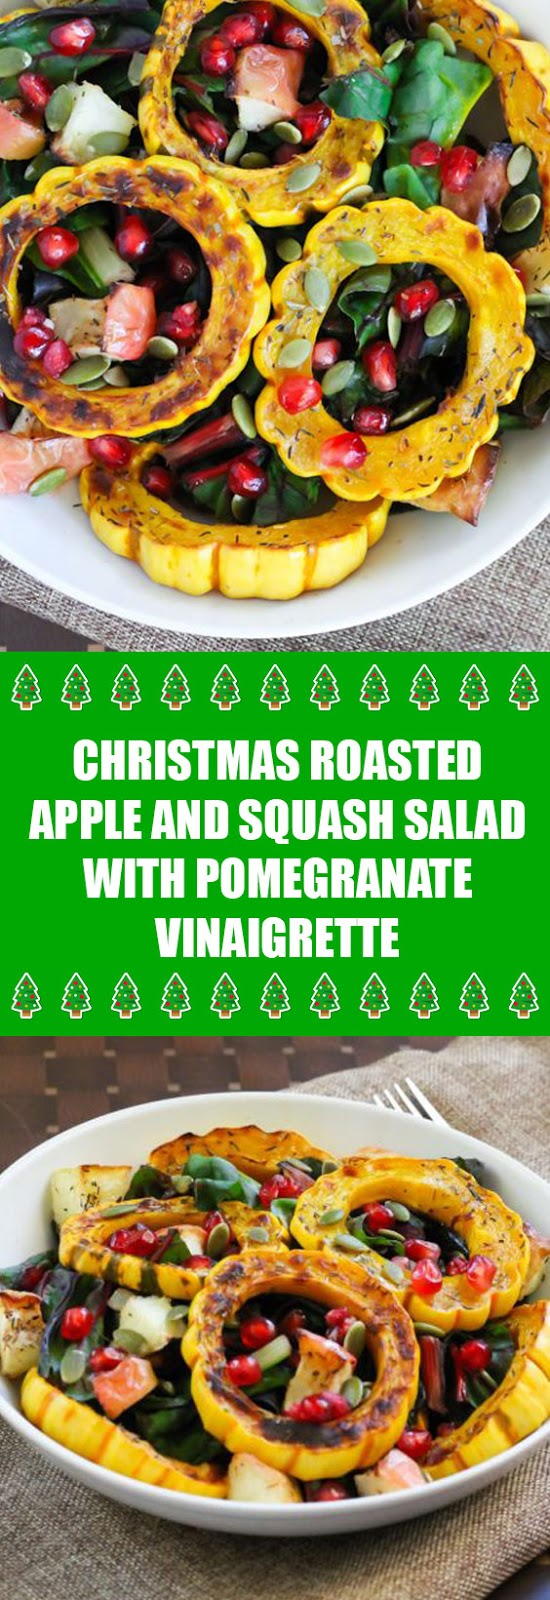 Christmas Roasted Apple and Squash Salad with Pomegranate Vinaigrette